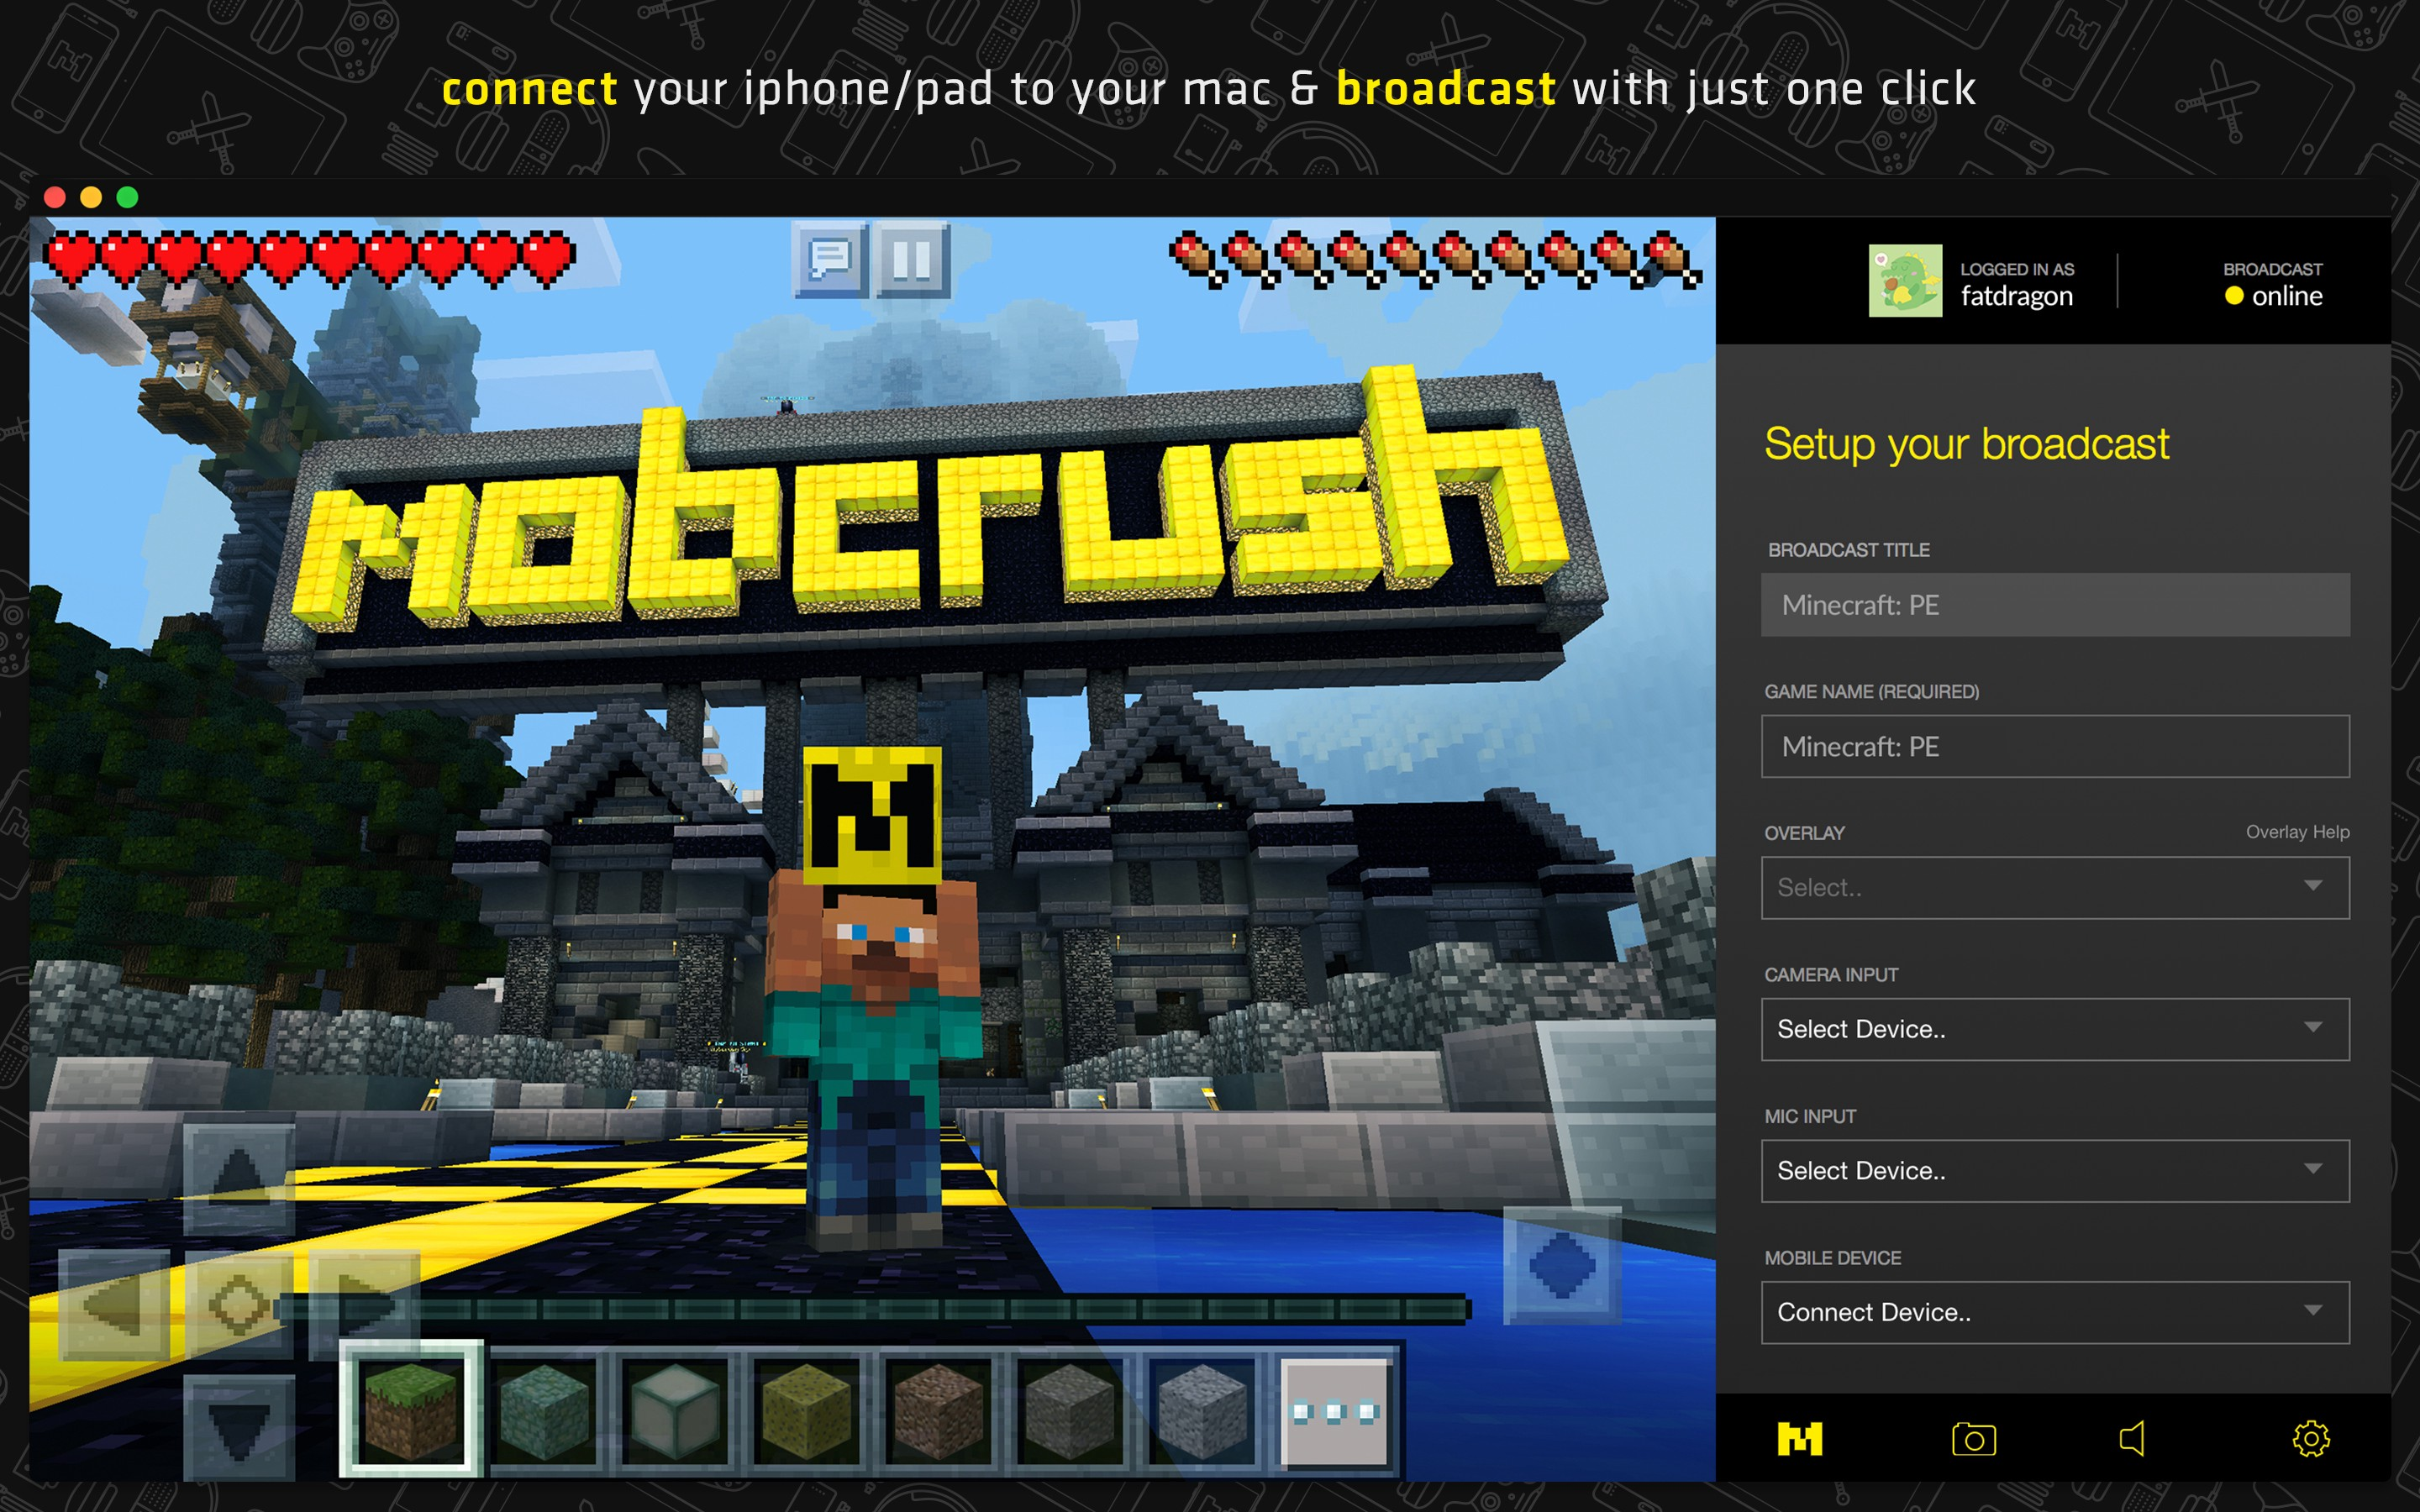 Streaming From Your Iphone And Ipad To Mobcrush Is About To Get Even Easier By Mobcrush Mobcrush Blog